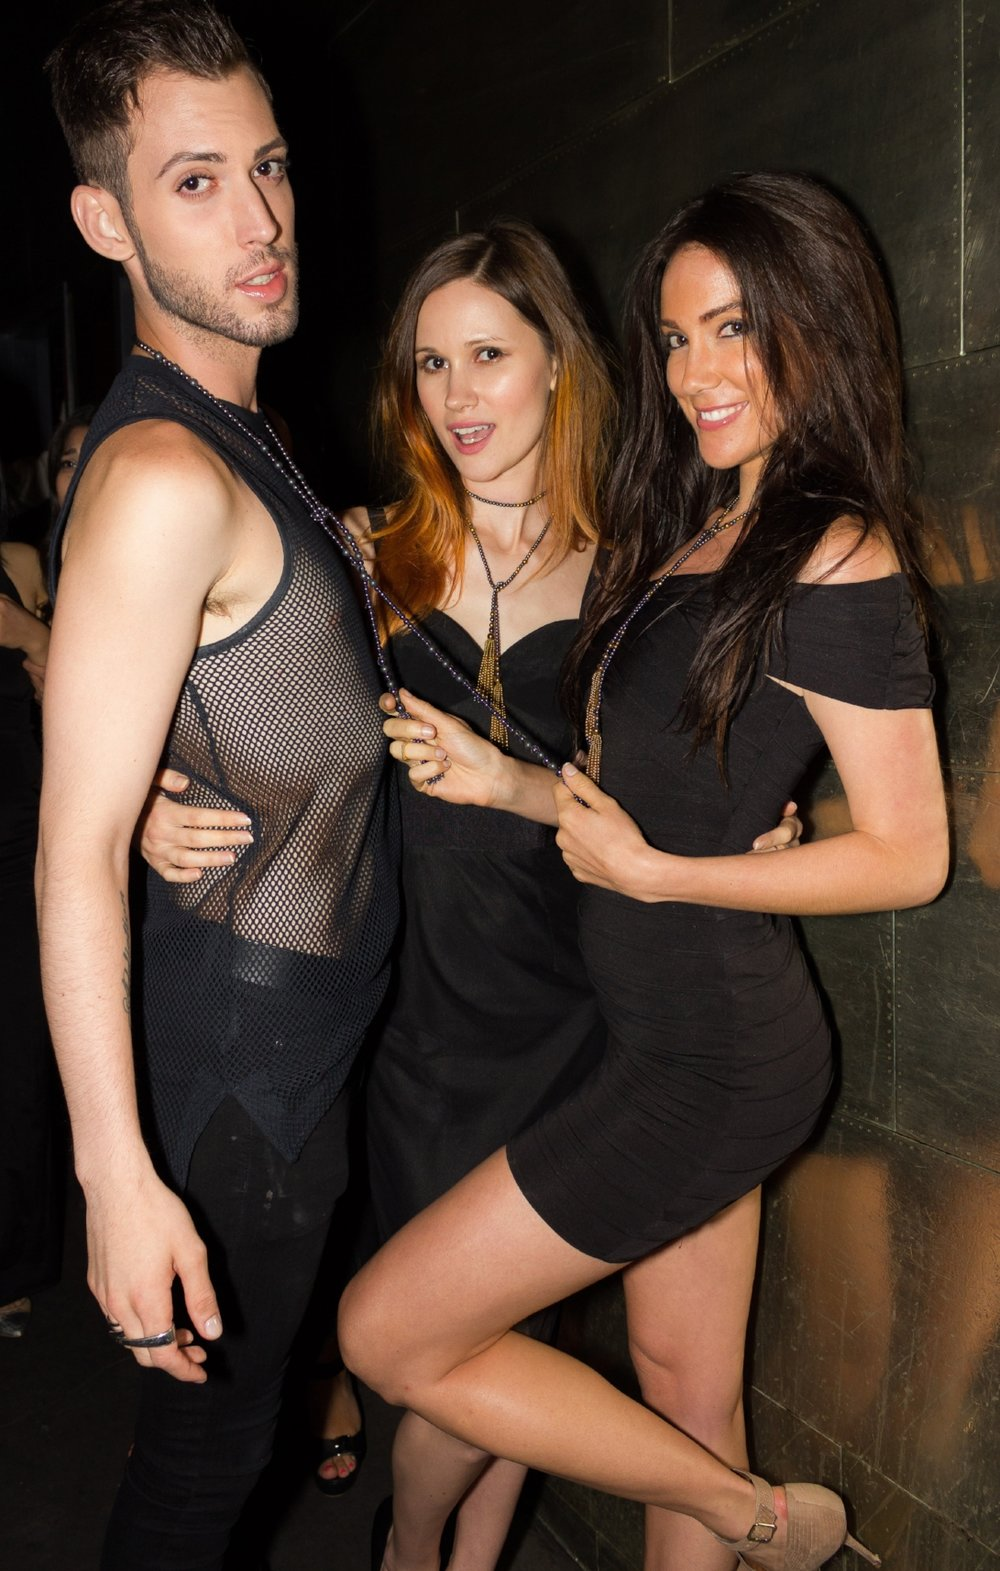 Models Tim MacKay, Eugenia & Isla Marie wearing  Olga Parkers Jewelry  Tassels from the LARIAT TASSEL COLLECTION